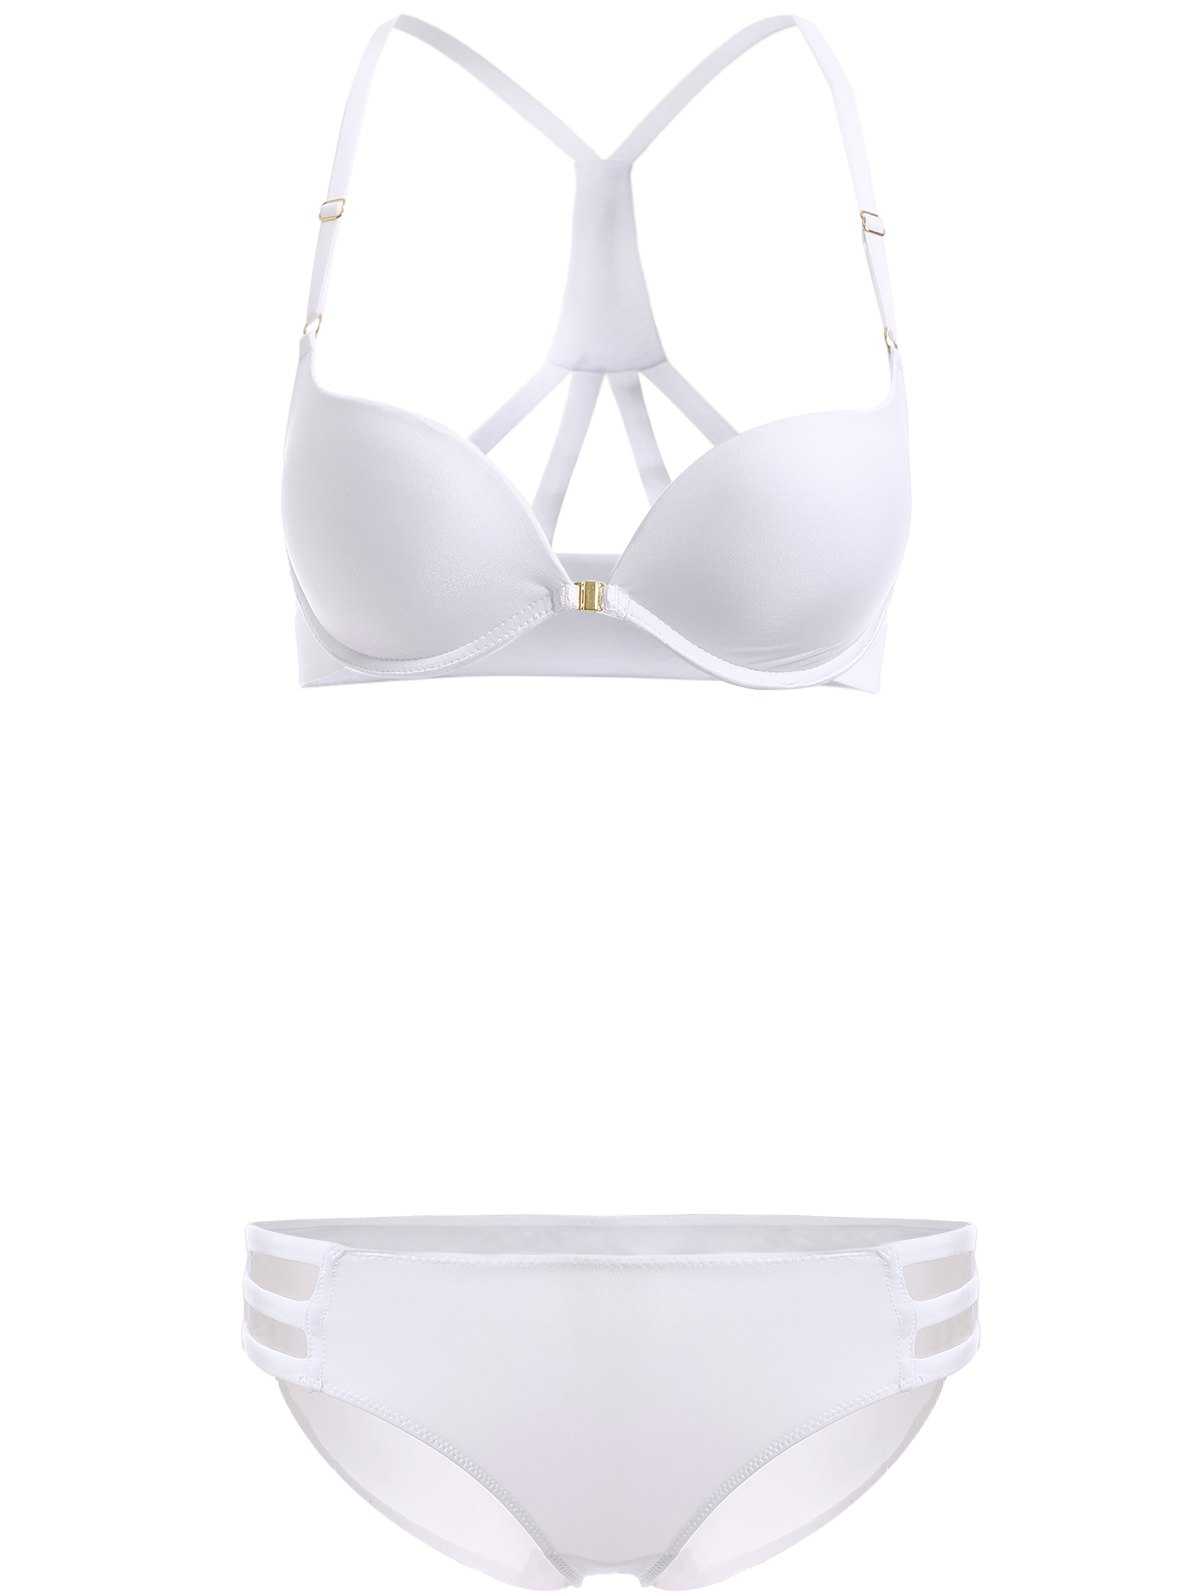 Brief Women's Front Closure Solid Color Push Up Bra Set - WHITE 70B